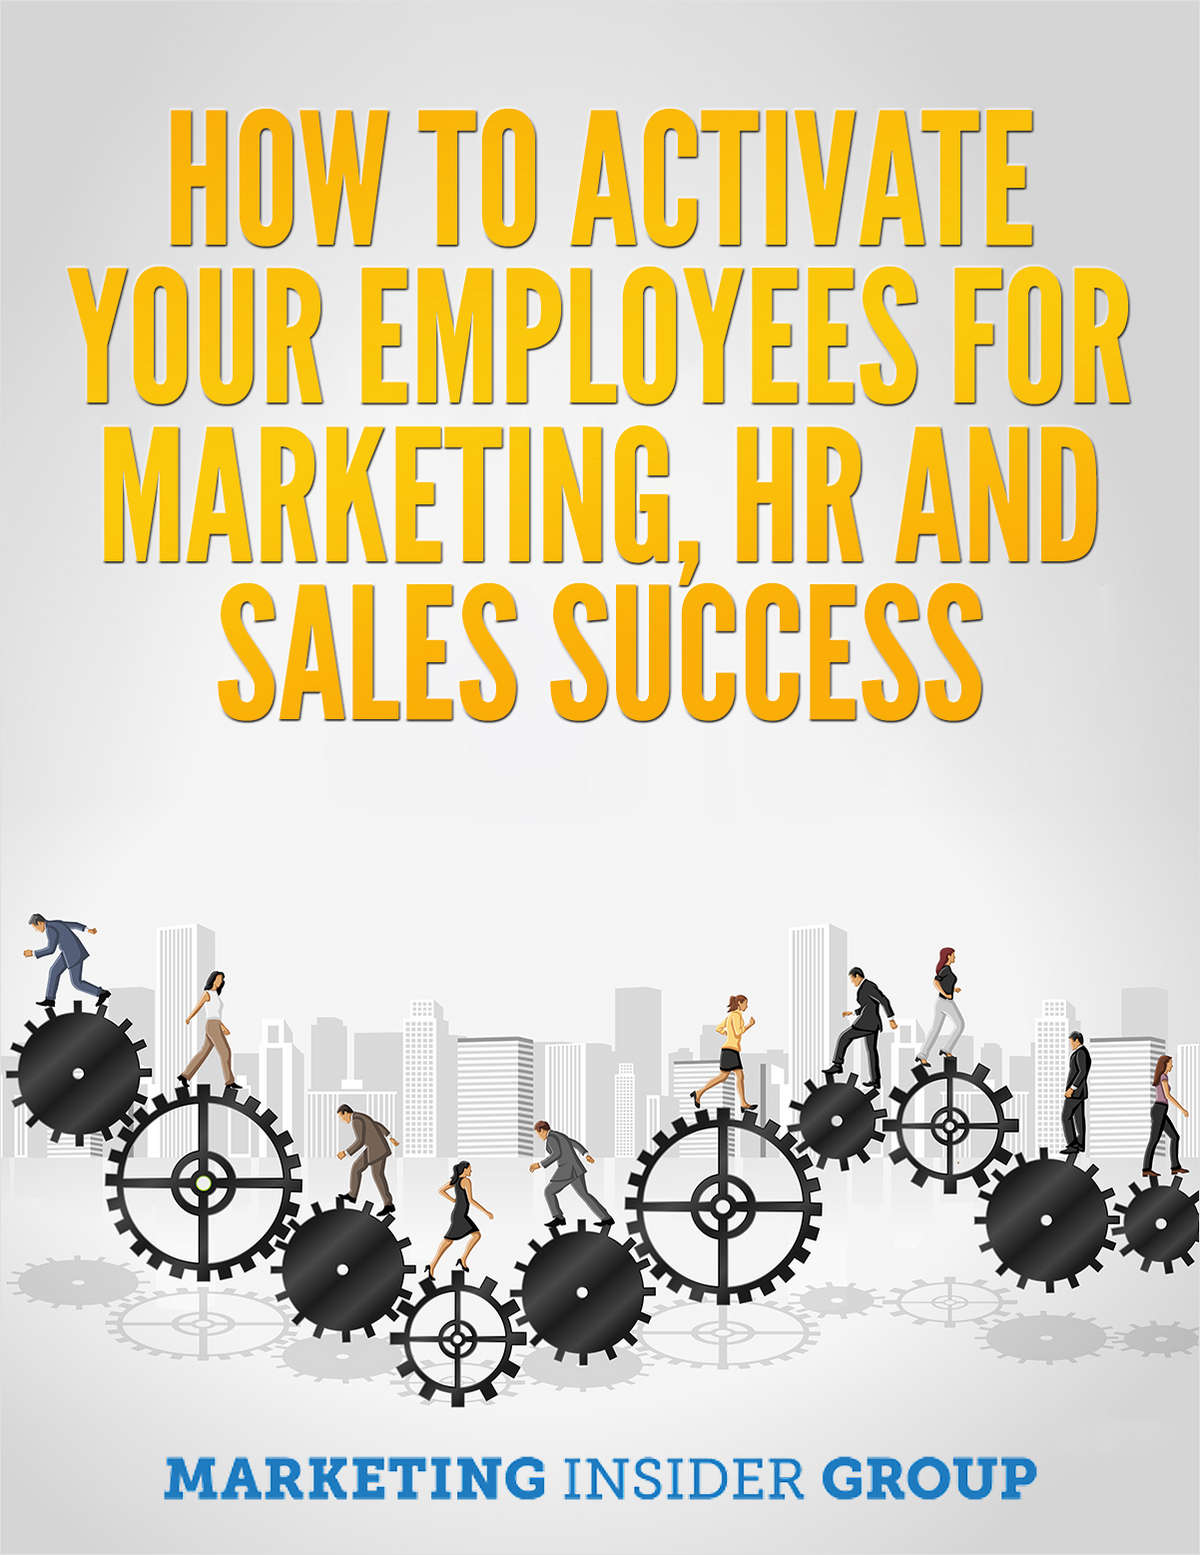 How To Activate Your Employees For Marketing, HR and Sales Success